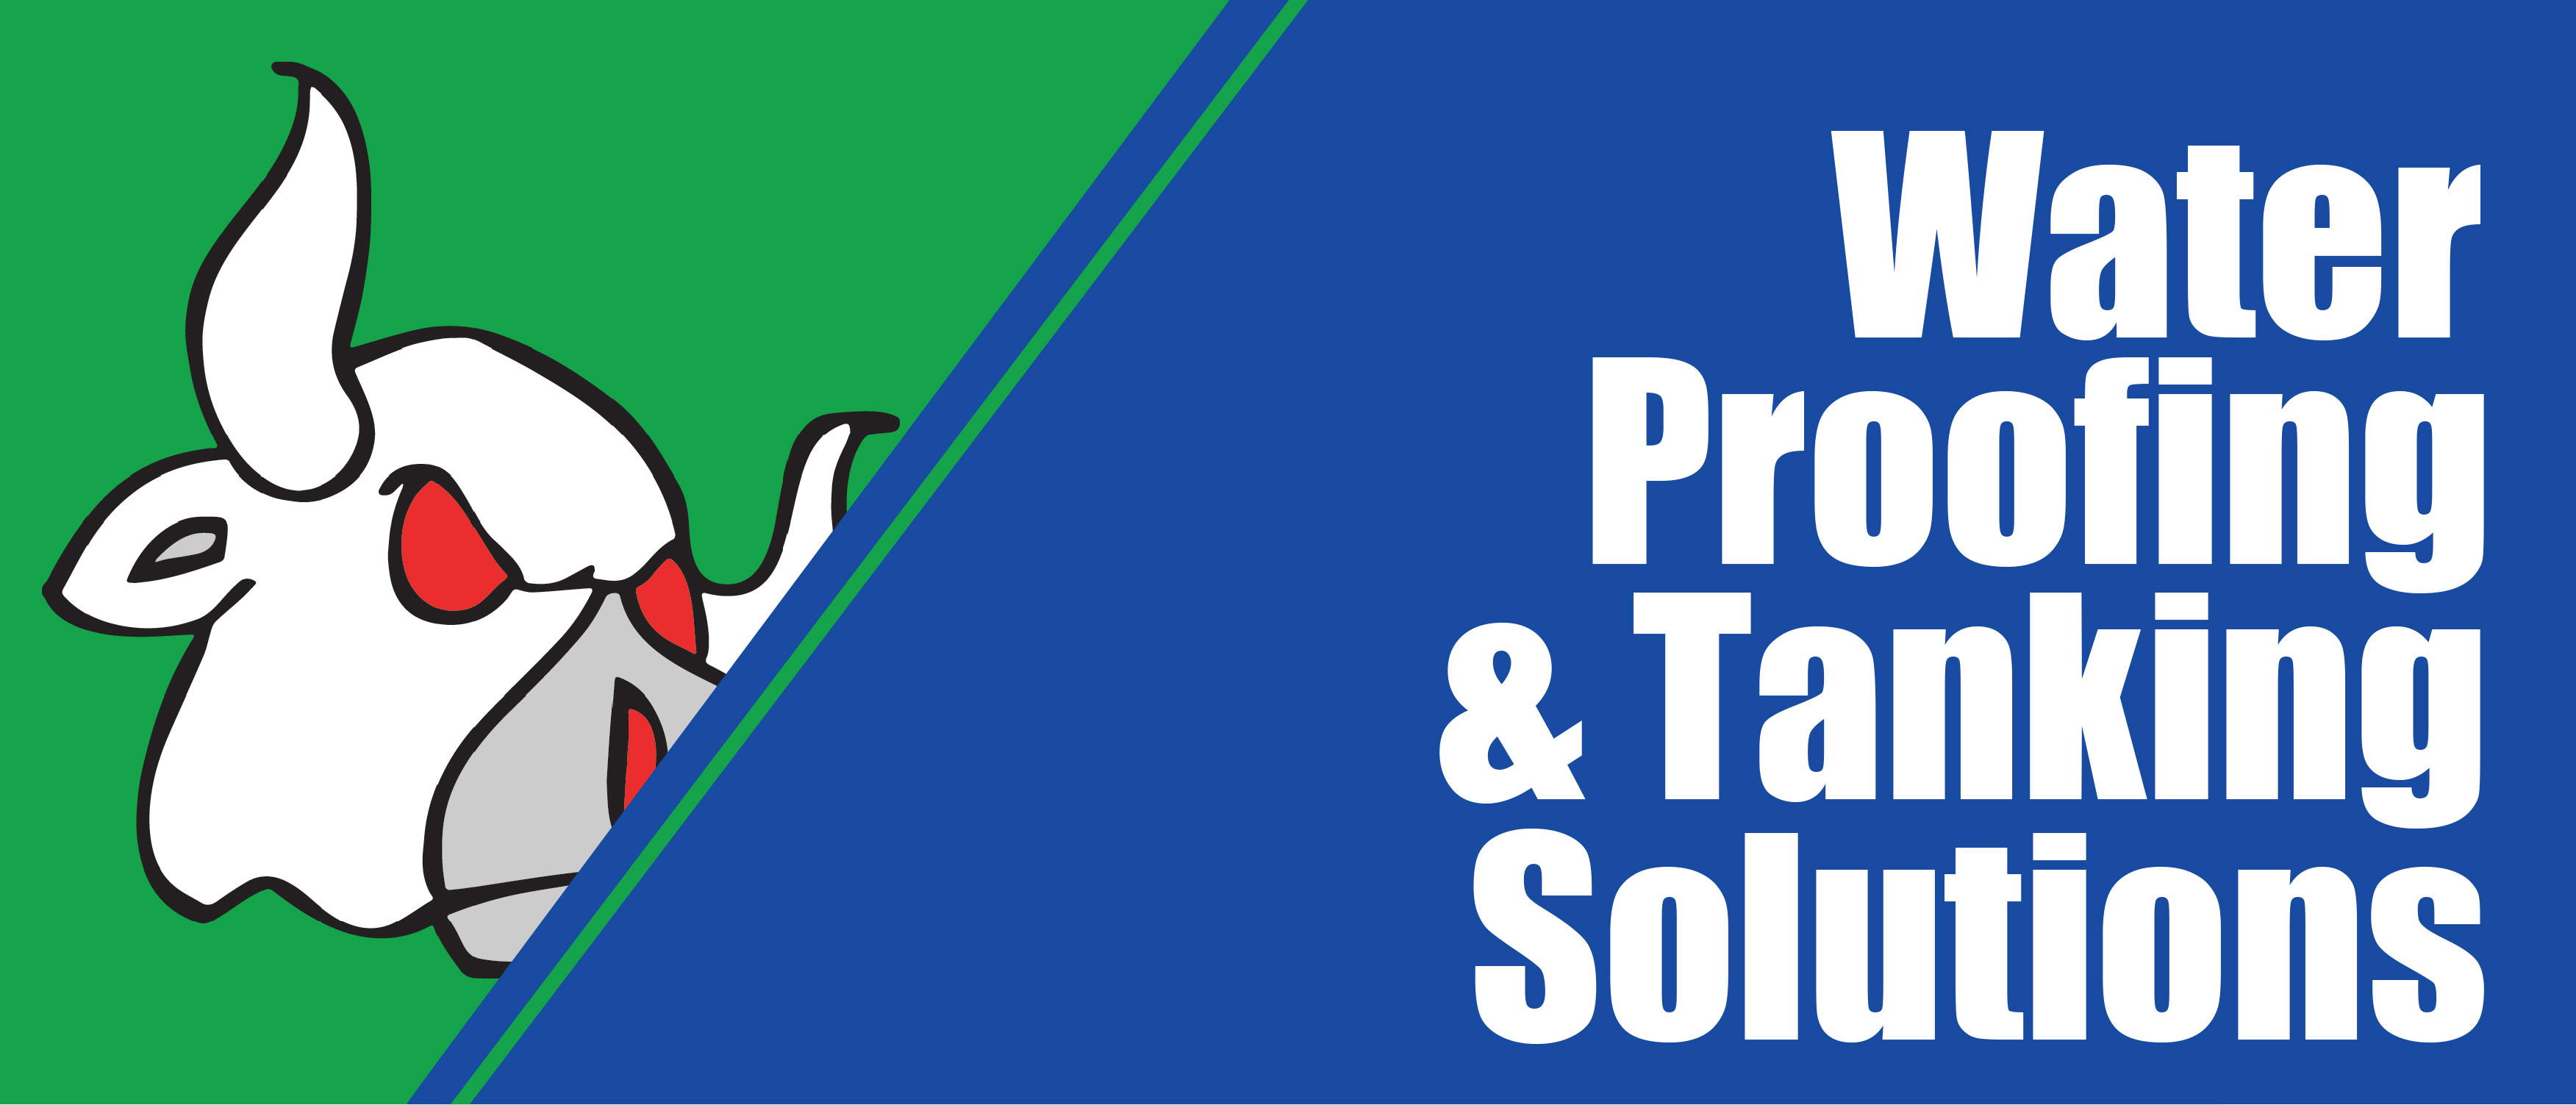 Waterproofing & Tanking Solutions Ltd